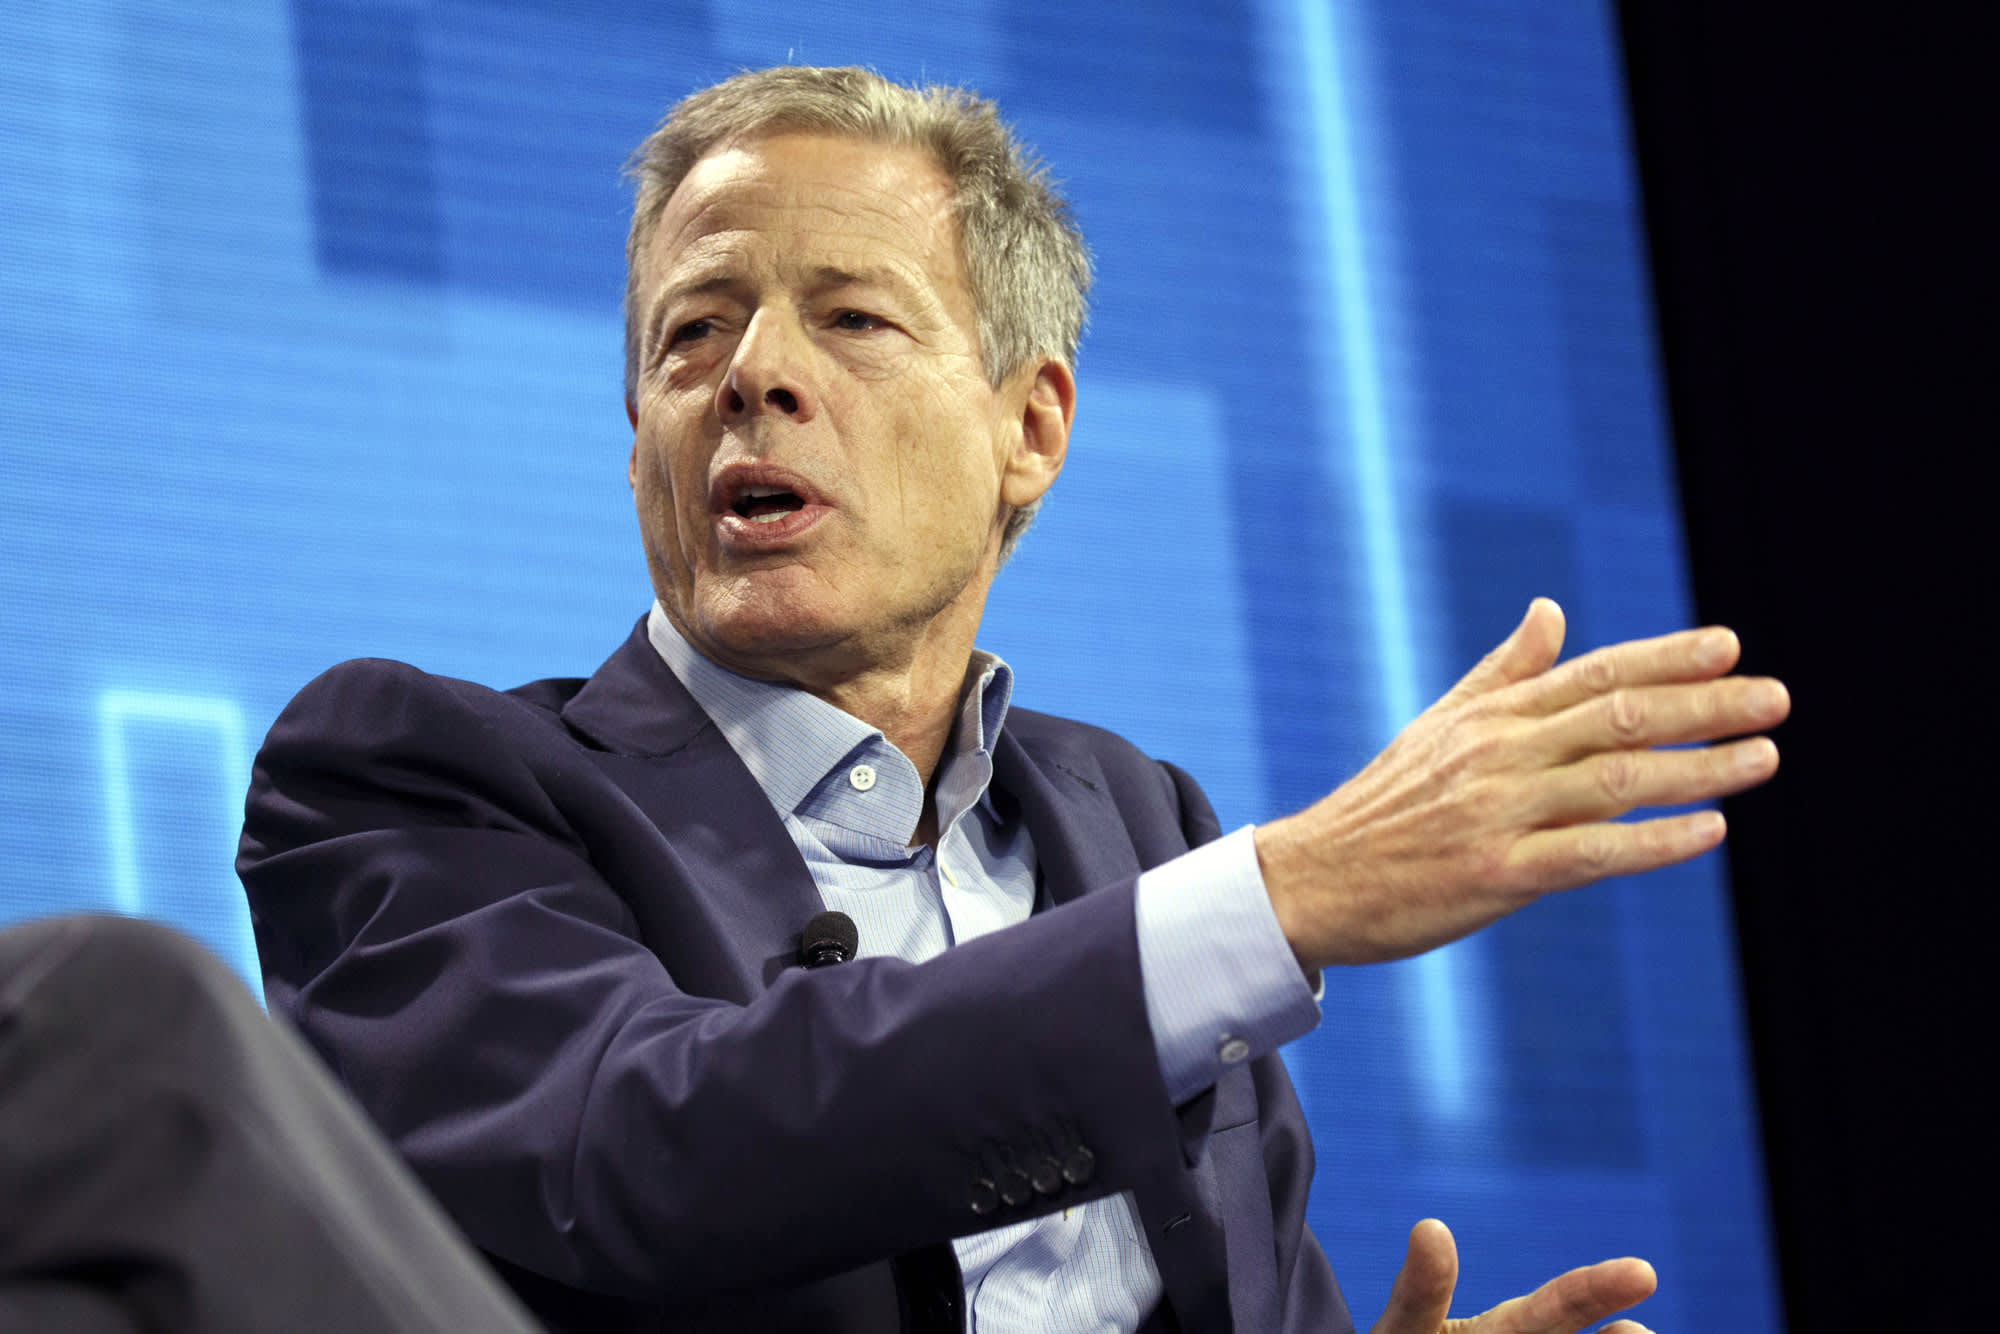 Ex-Time Warner CEO Jeff Bewkes says he has doubts about vertical integration